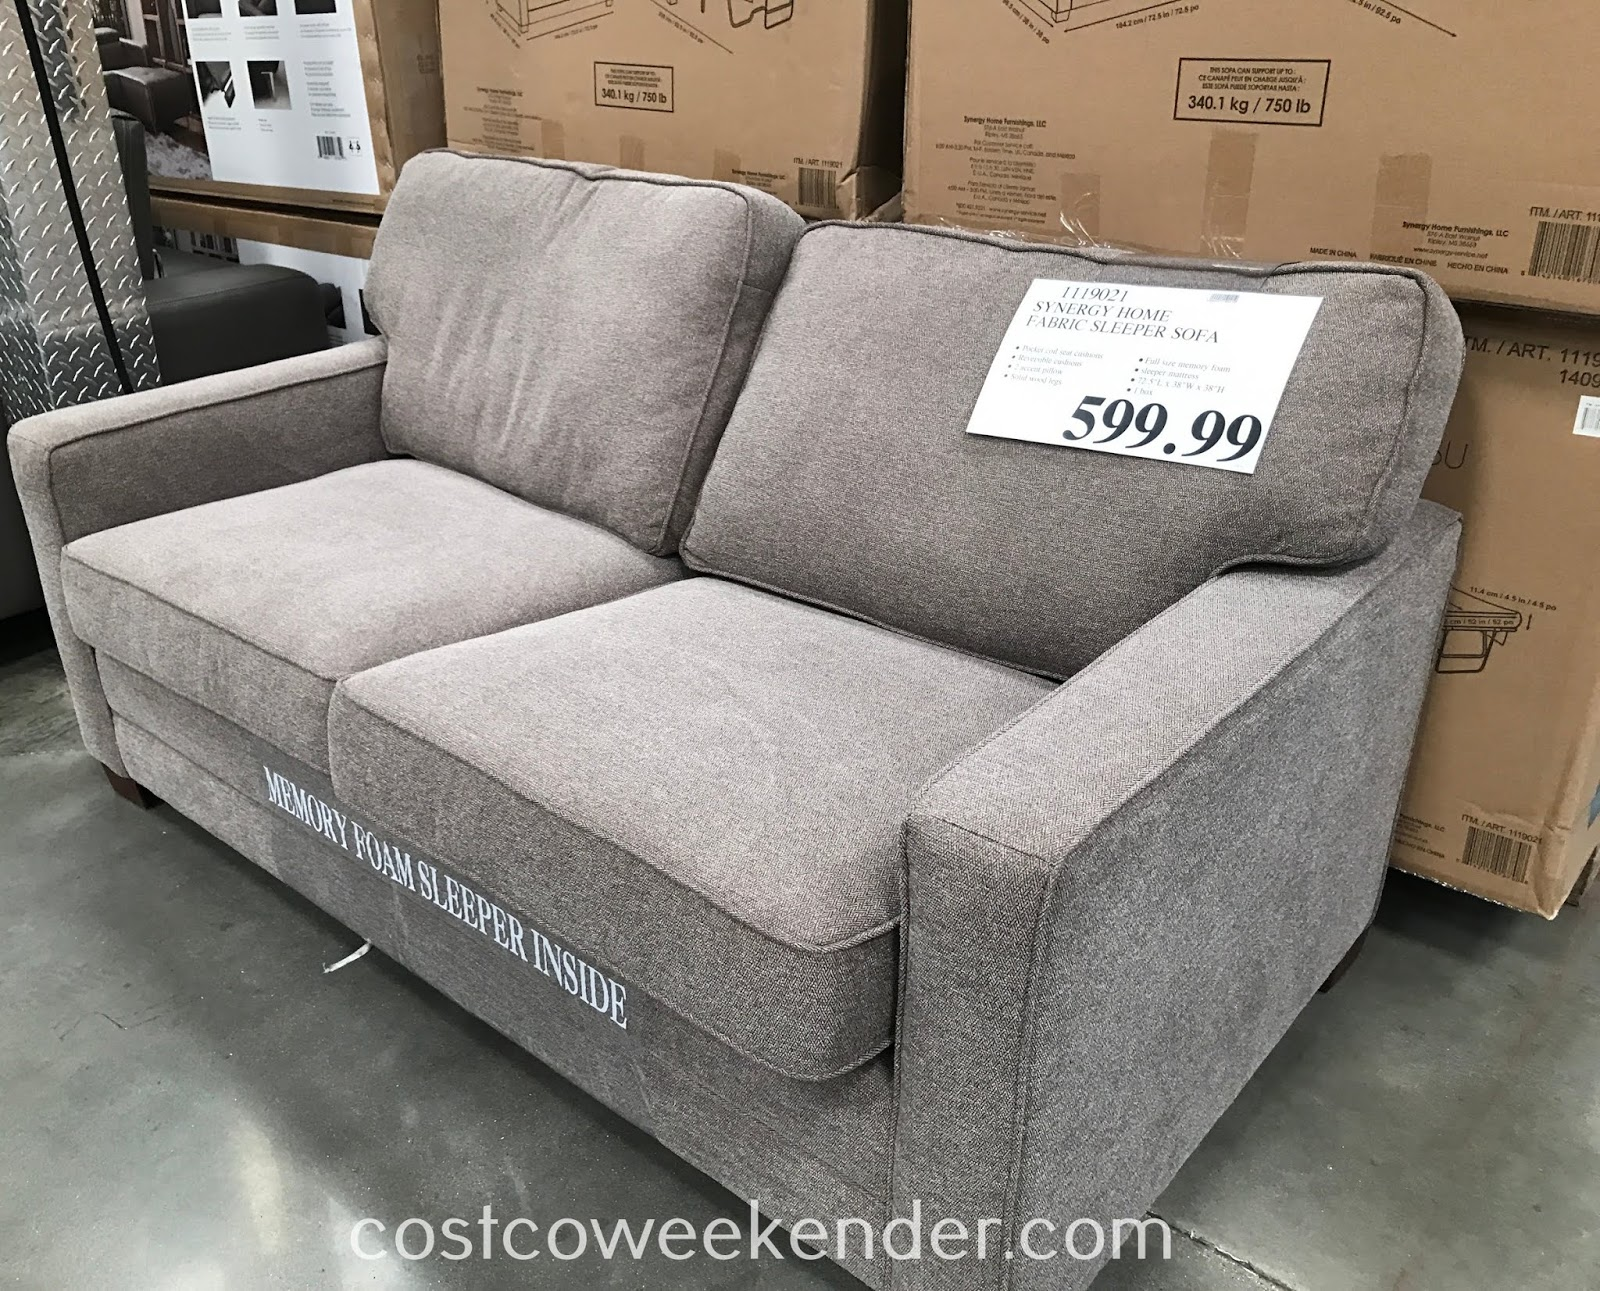 - Synergy Home Fabric Sleeper Sofa Costco Weekender